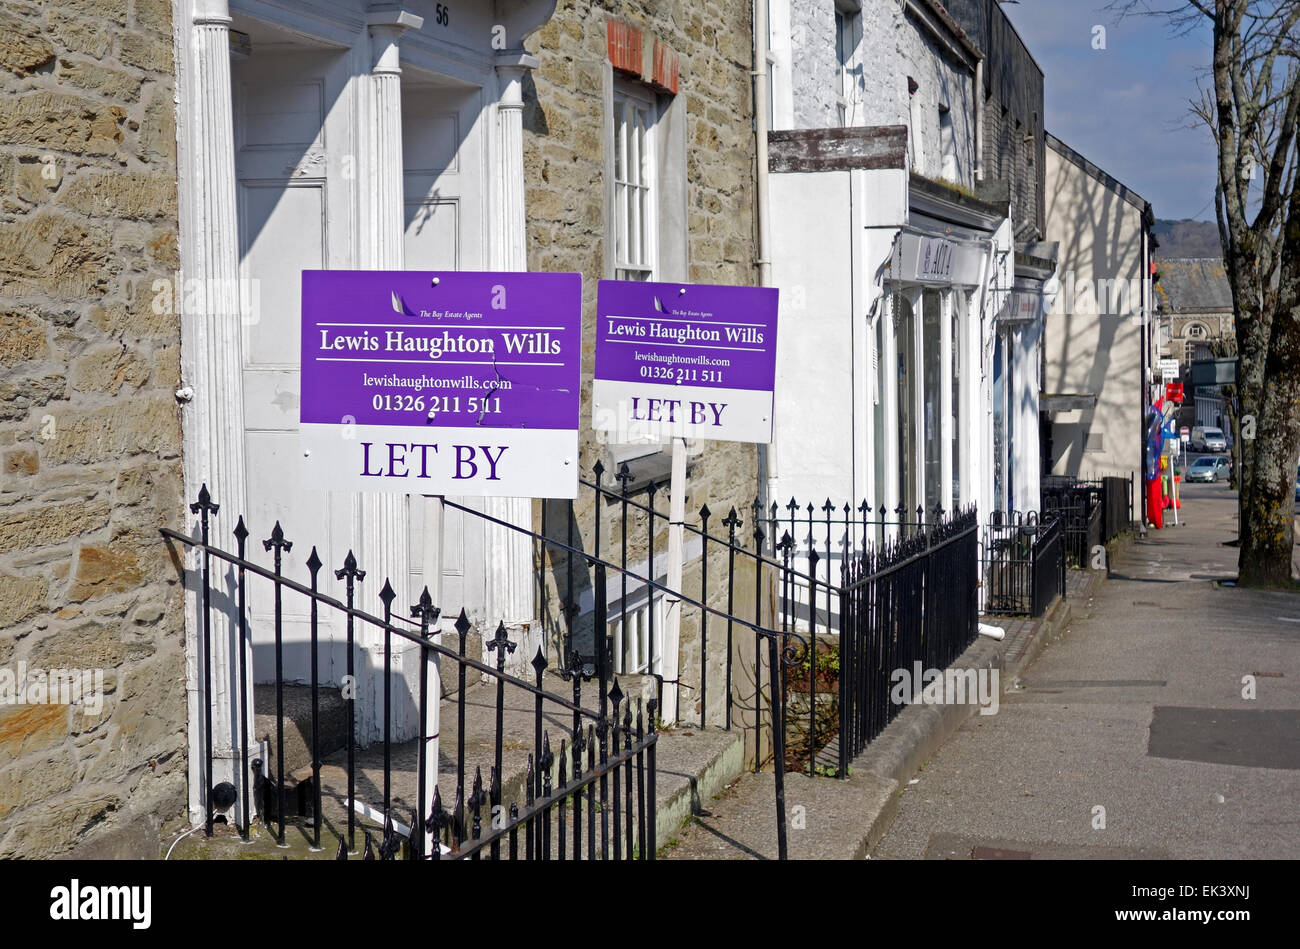 Property for let in Falmouth, Cornwall, UK - Stock Image